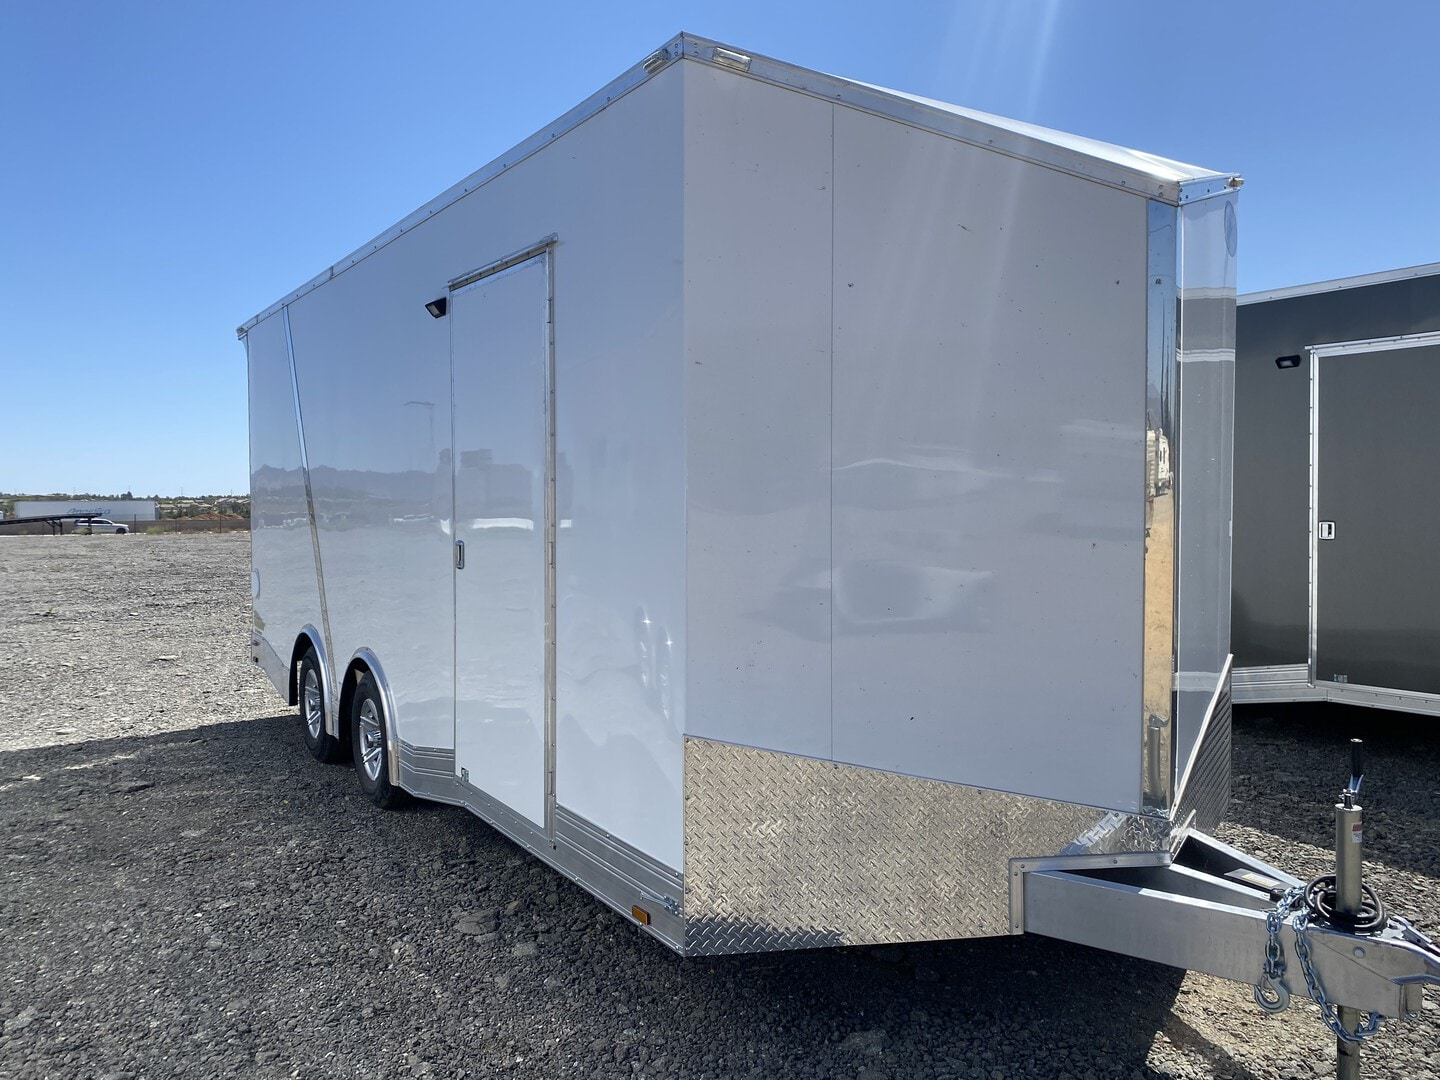 New, 2022, Forest River, 2022 Forest River Slingshot 8.5x20' in Beaumont, CA, Enclosed Trailers